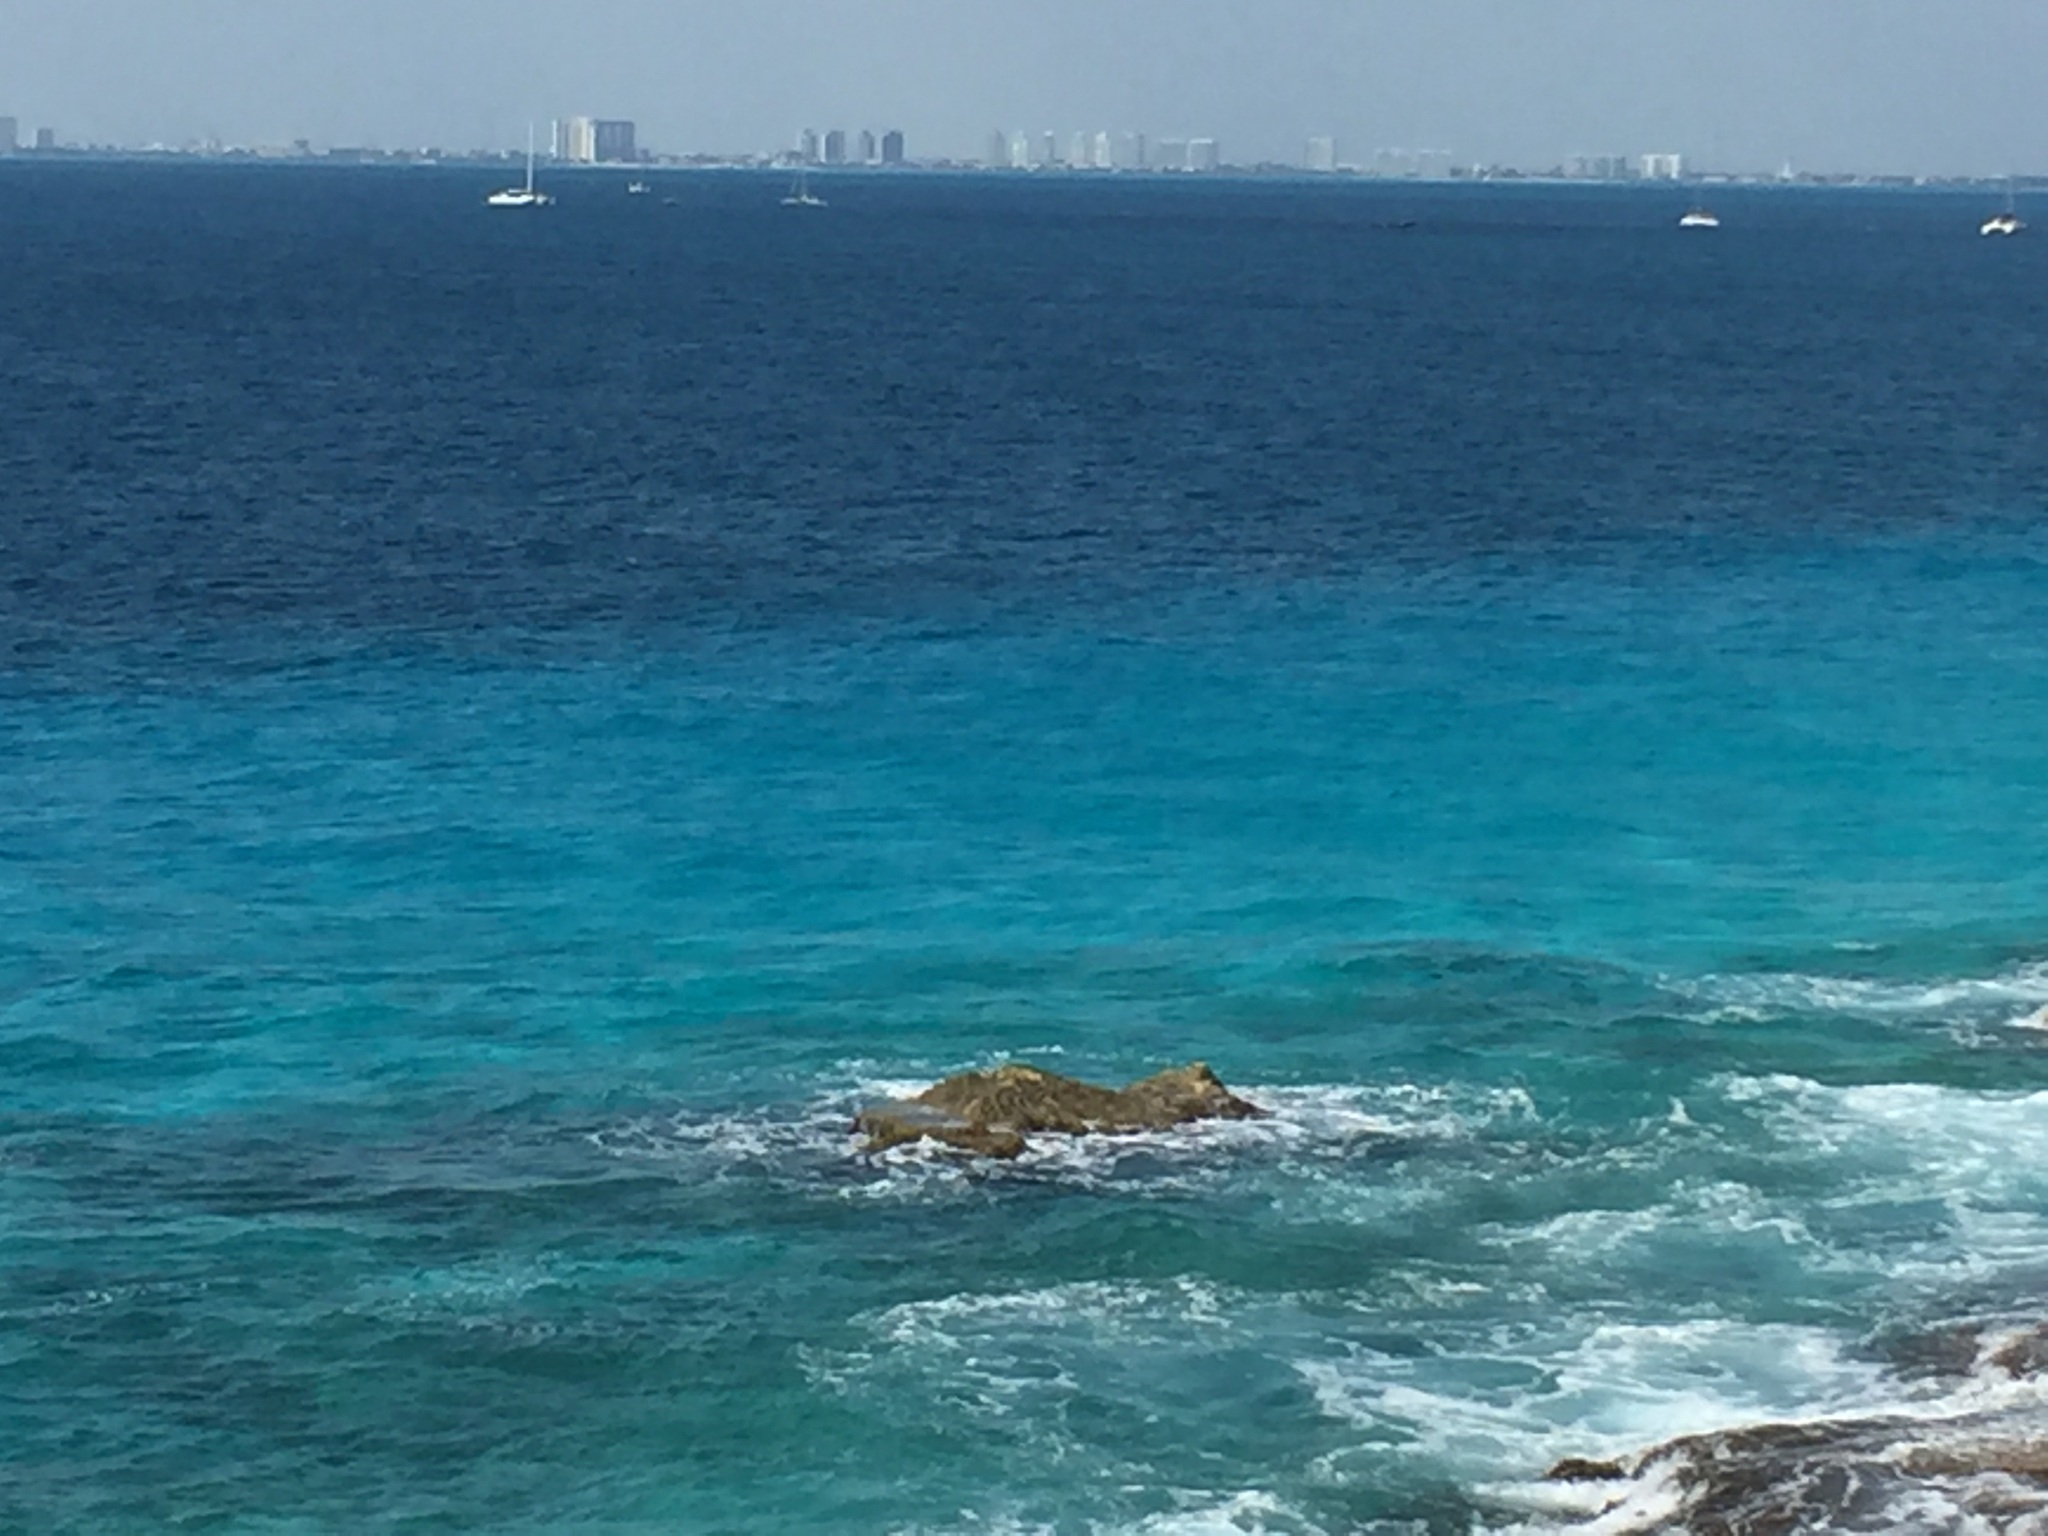 Cancun in the distance, across the blue, blue water.